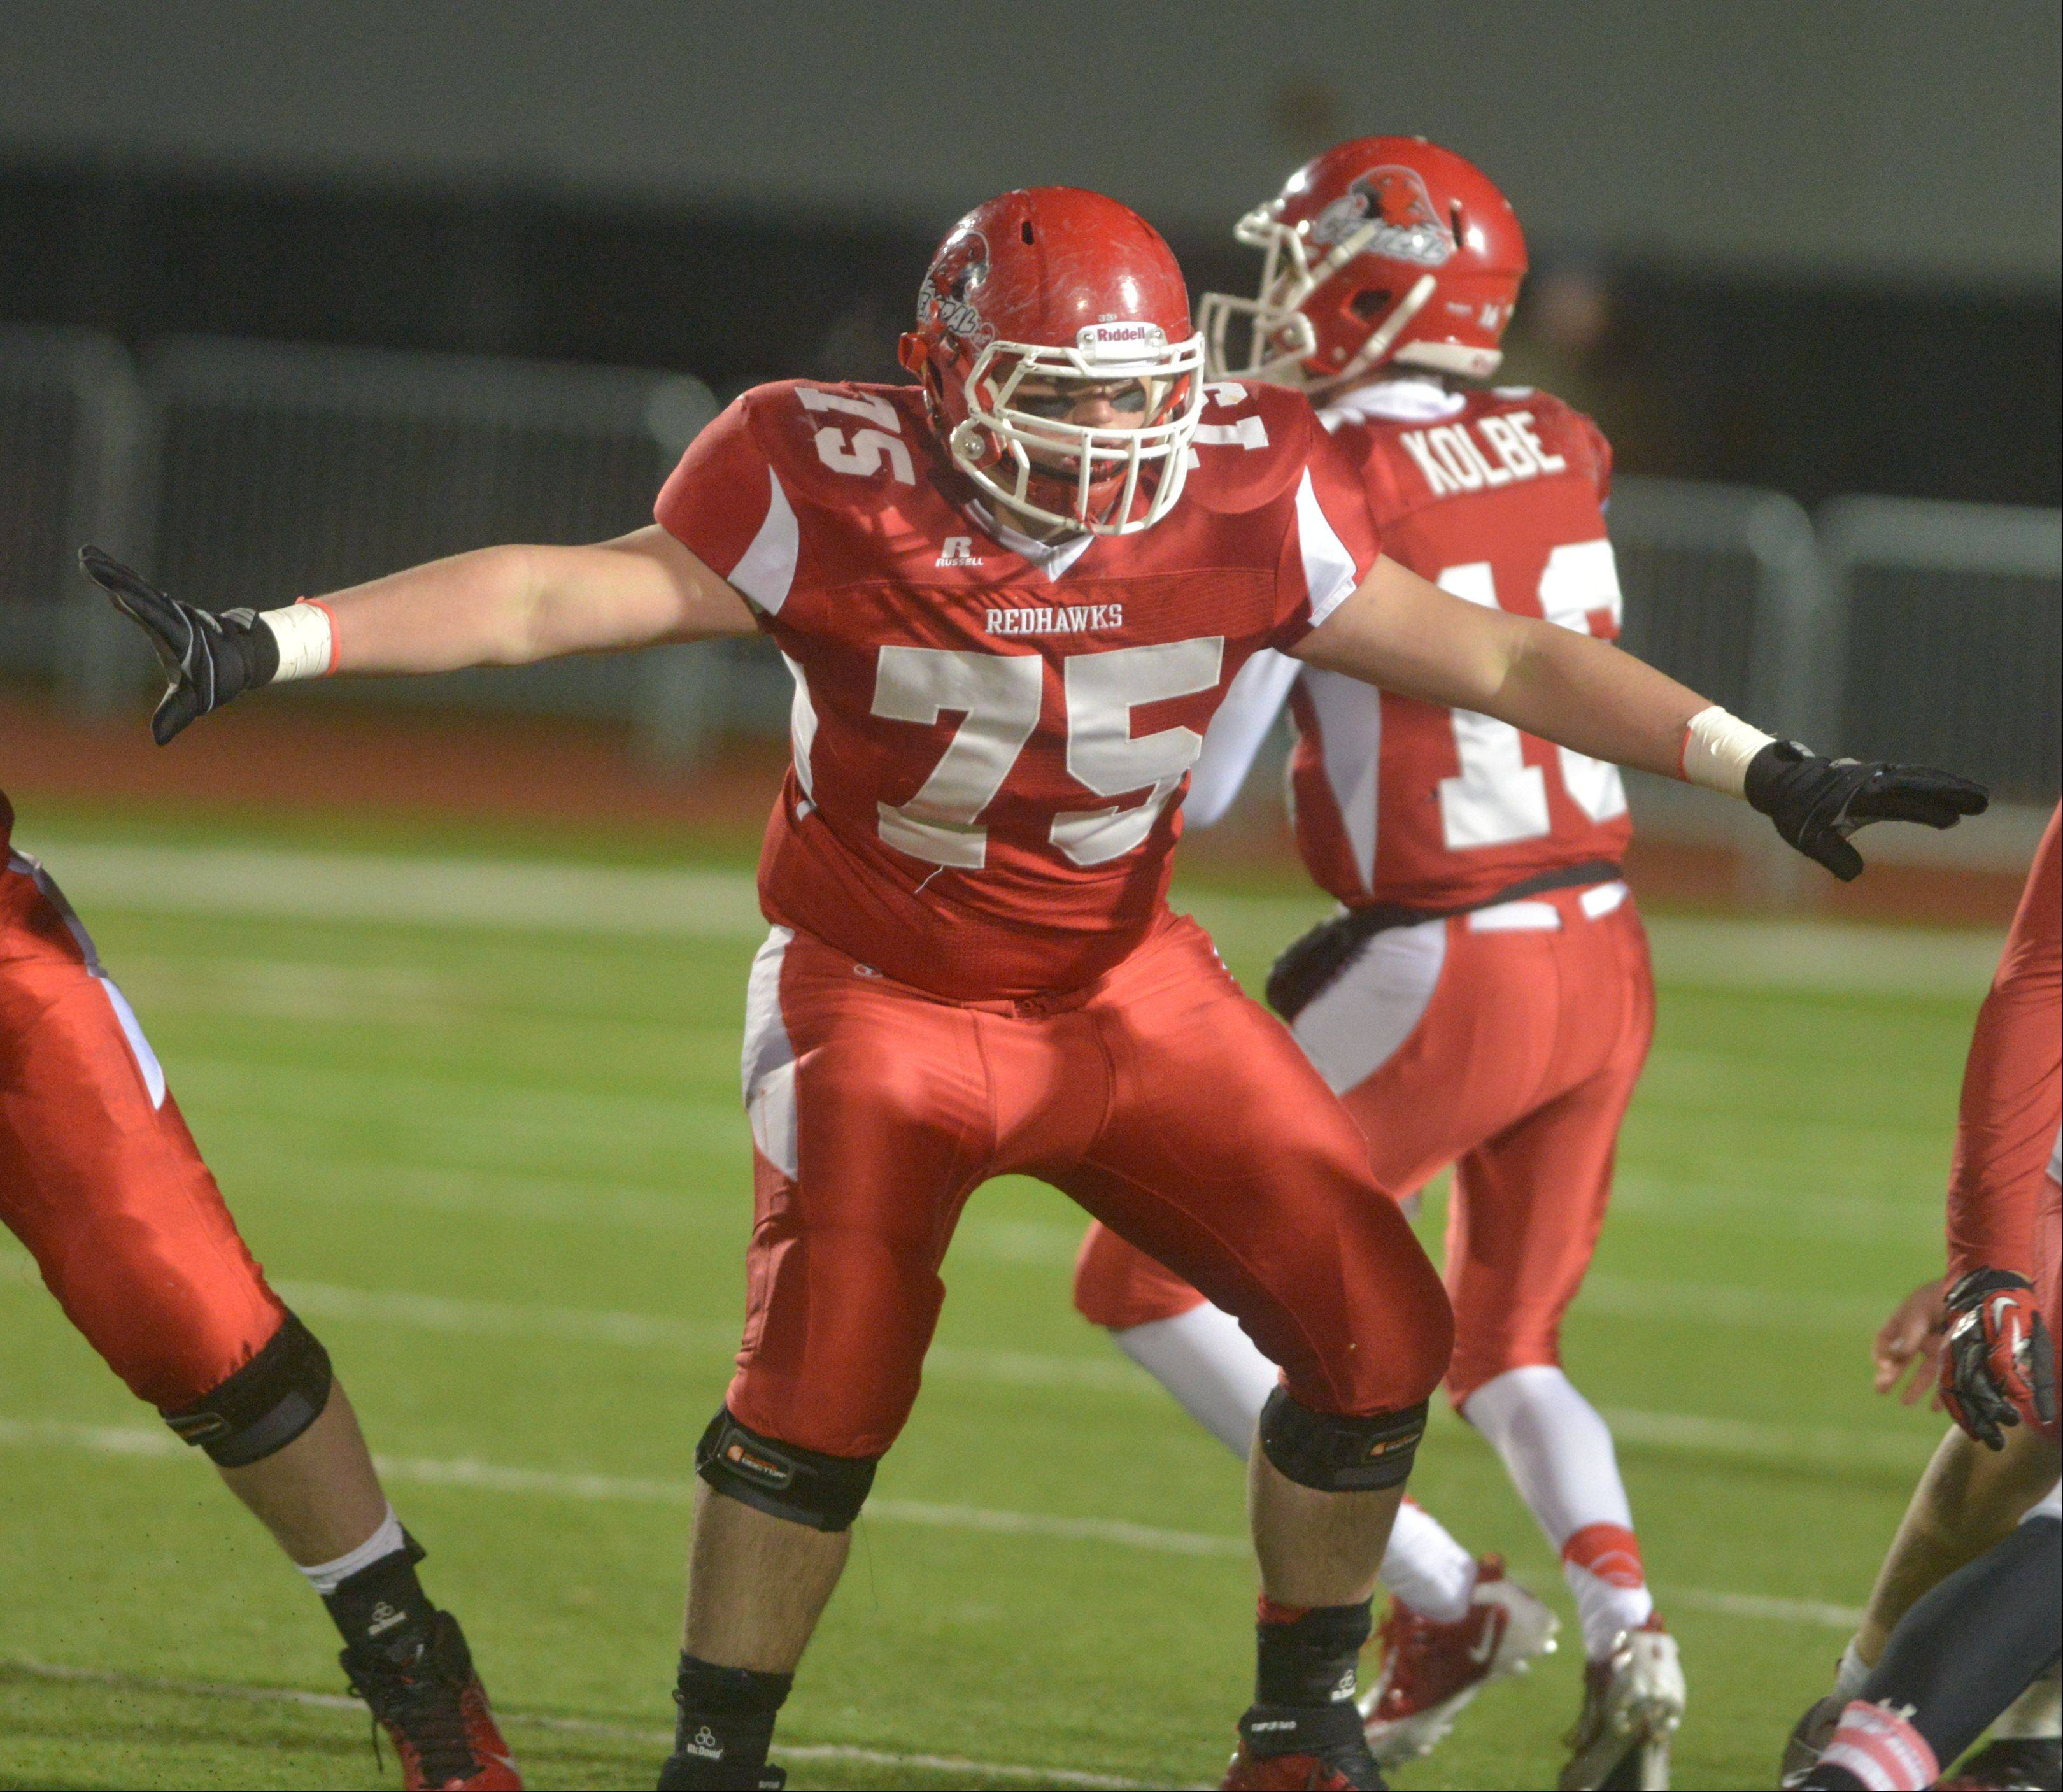 Playoffs -Semifinal- Photos from the Marist at Naperville Central Class 8A playoff football game in Naperville on Saturday, Nov. 23.